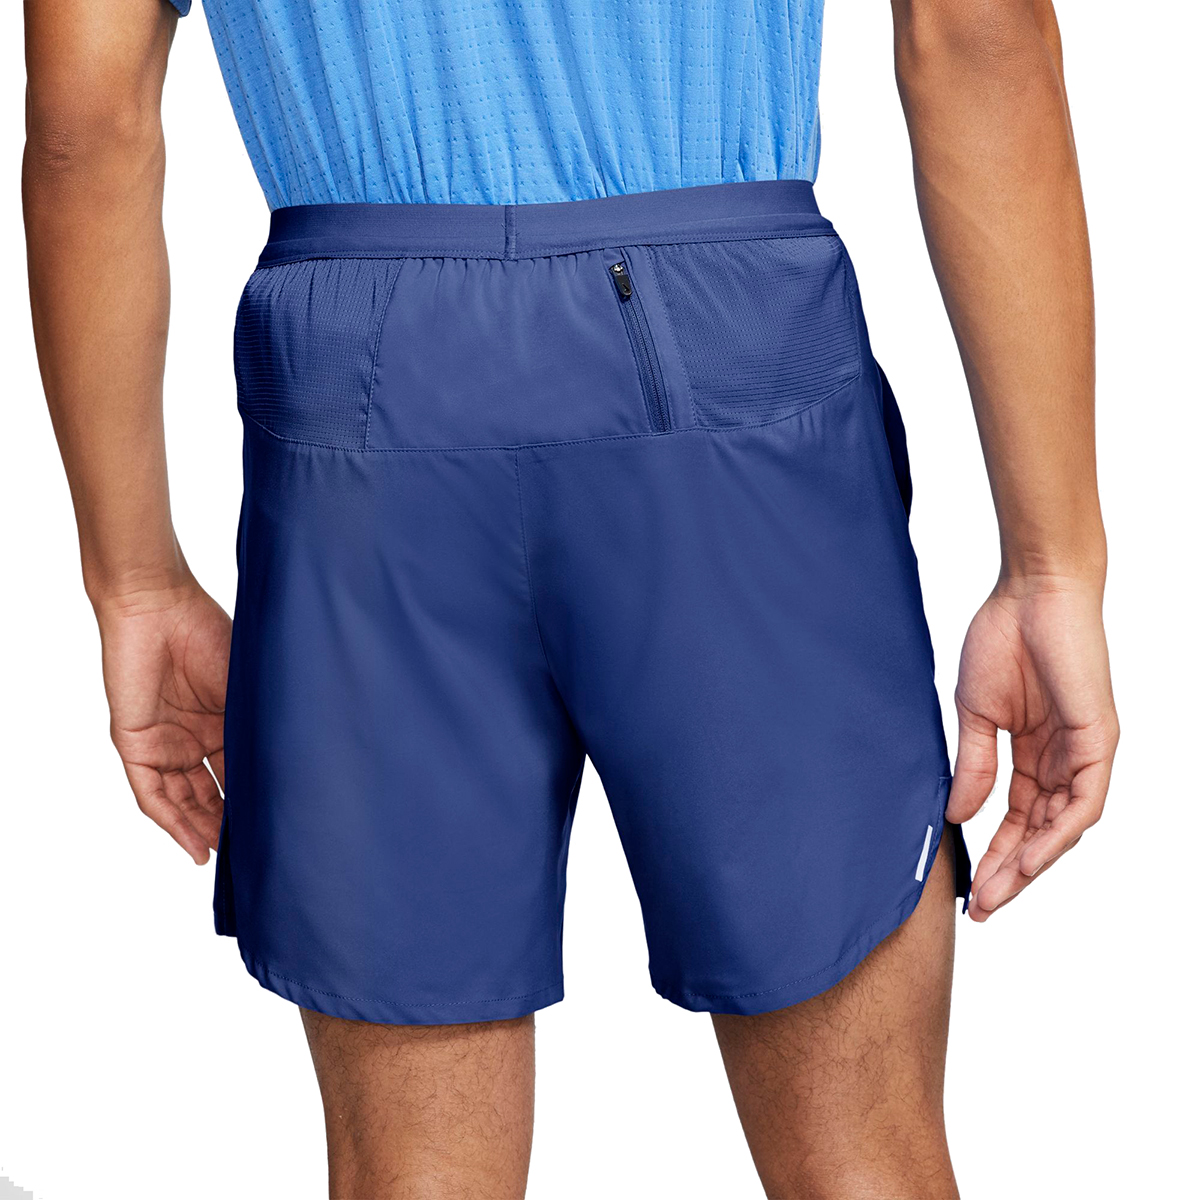 """Men's Nike Flex Stride 7"""" 2-In-1 Running Shorts - Color: Astronomy Blue/Royal Pulse - Size: M, Astronomy Blue/Royal Pulse, large, image 2"""